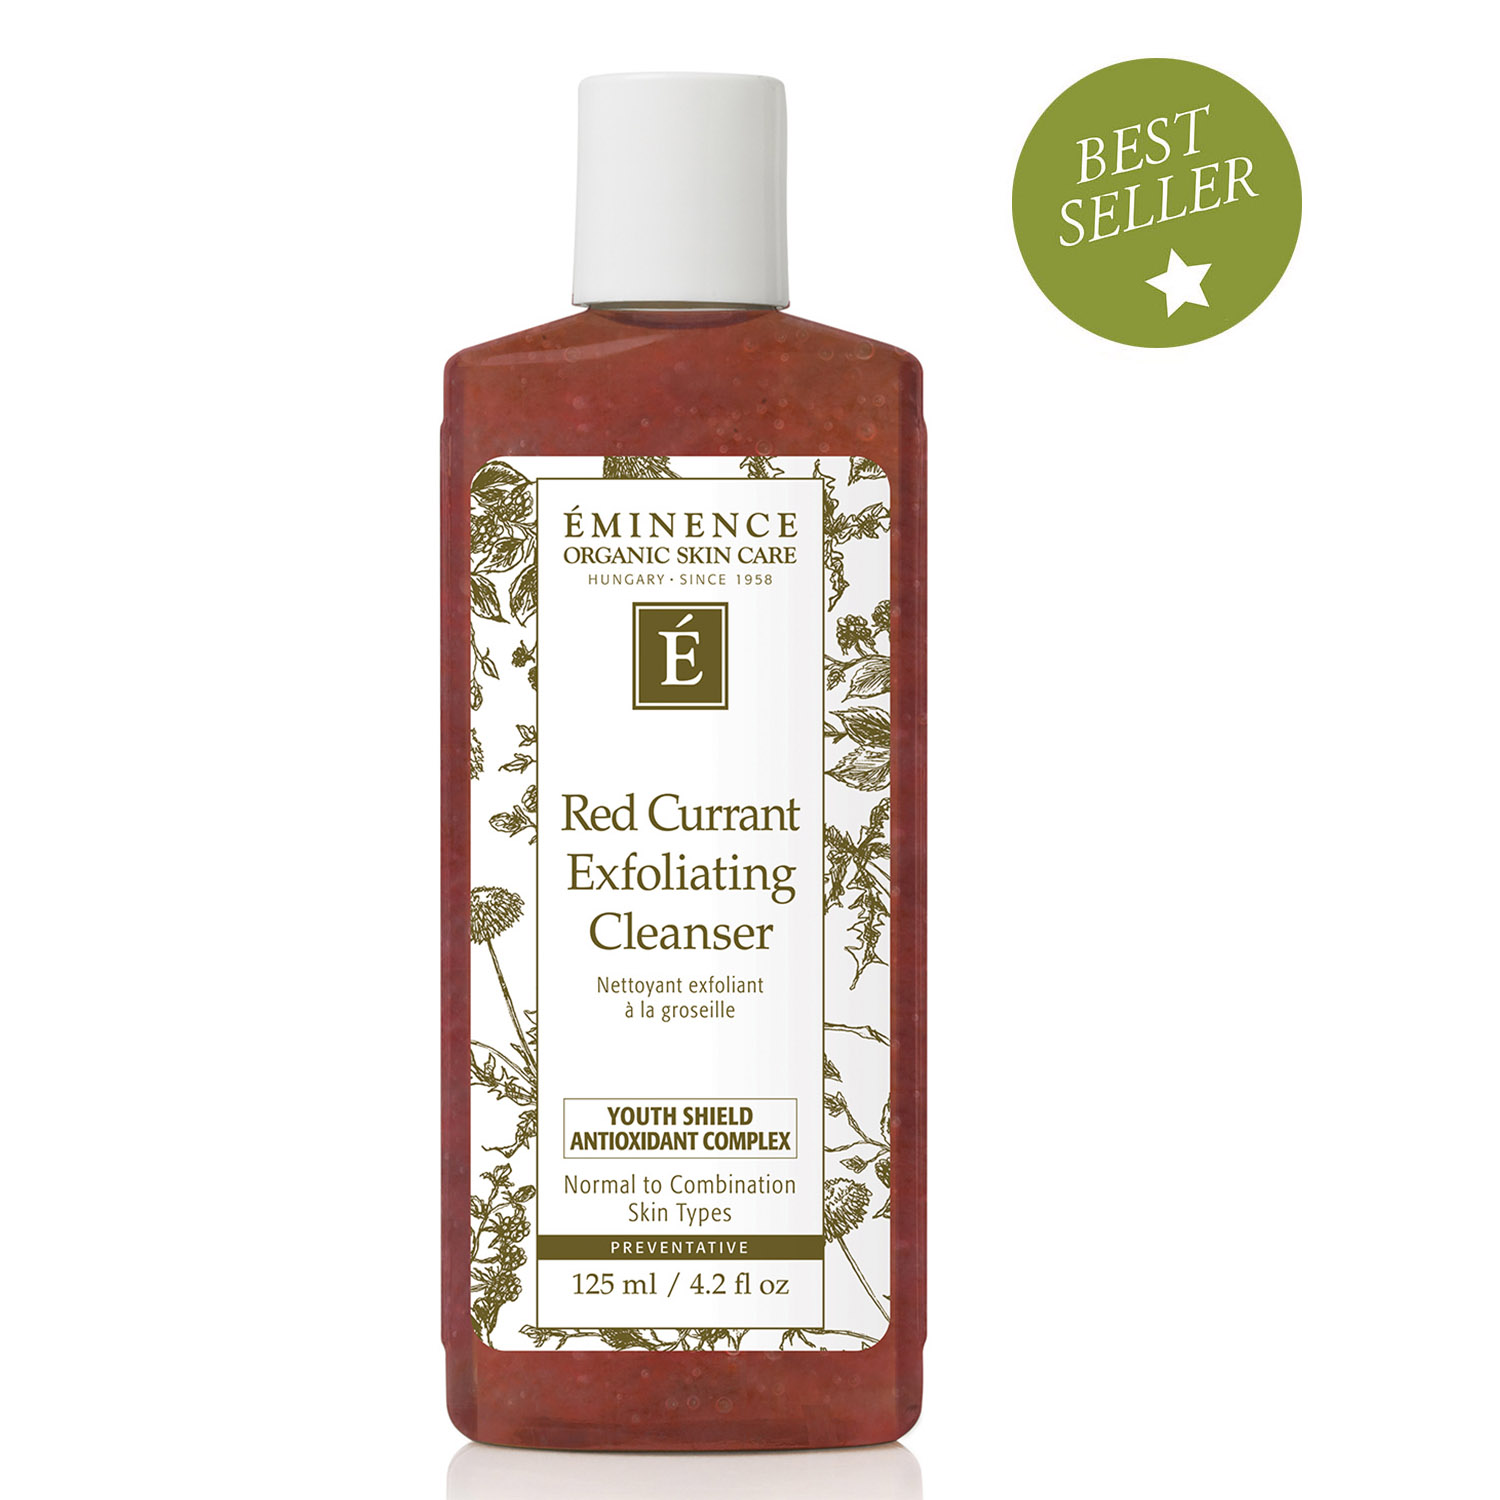 Eminence Red Currant Exfoliating Cleanser Vegetable Glycerine 125 Ml Quick View